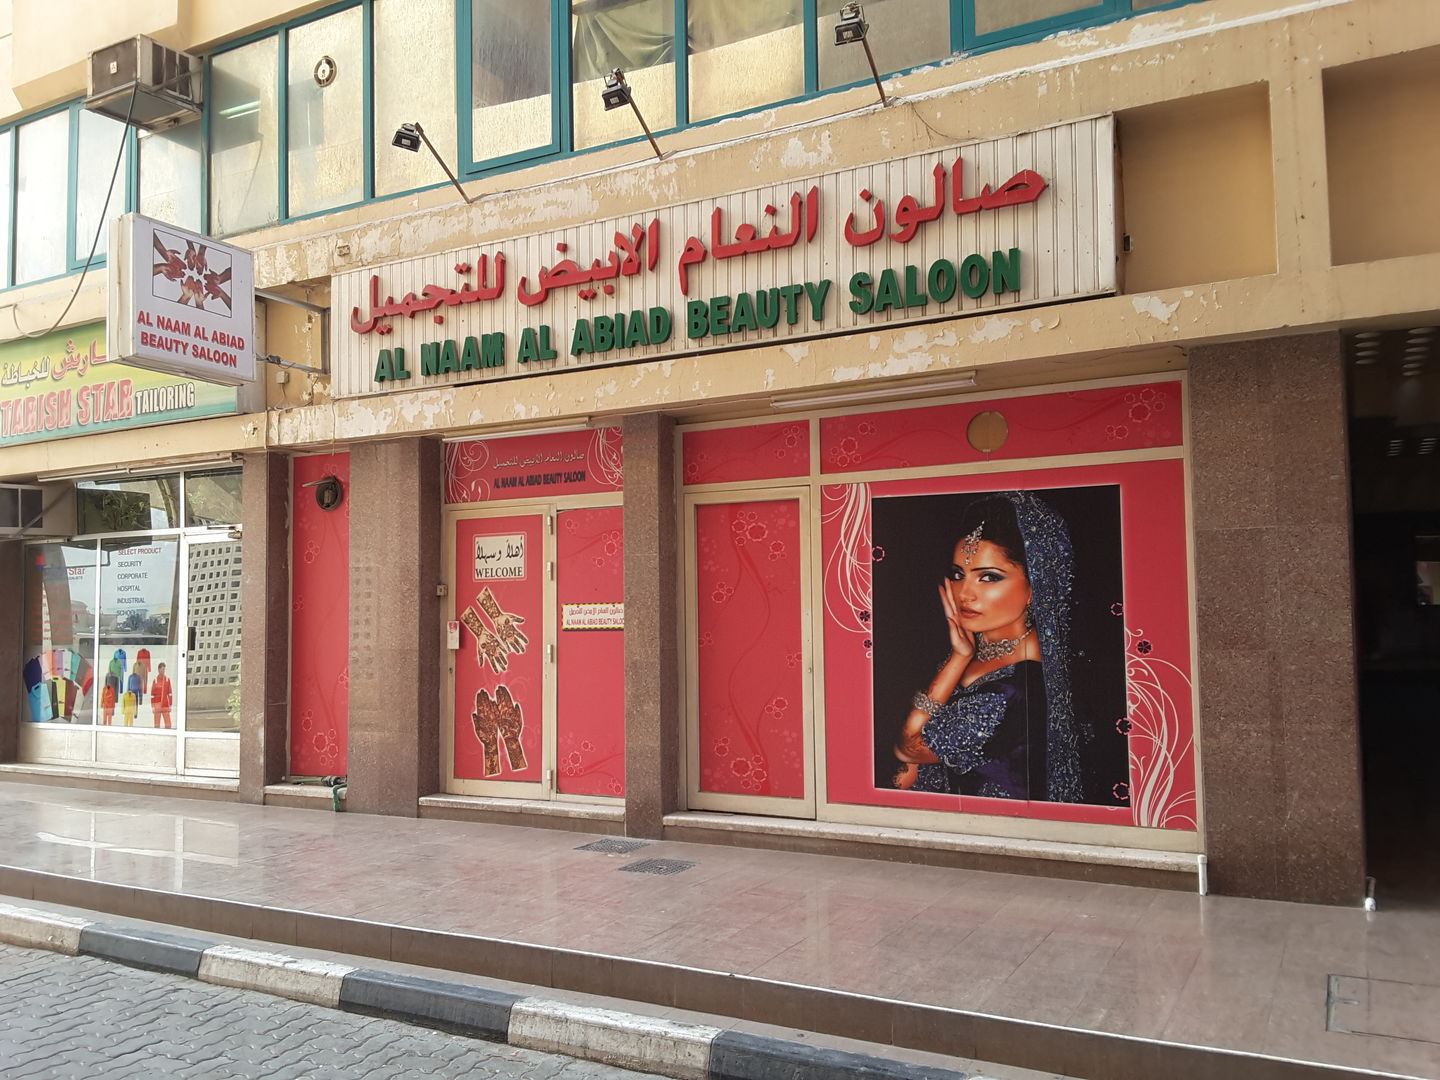 HiDubai-business-al-naam-al-abiad-beauty-saloon-beauty-wellness-health-beauty-salons-al-twar-1-dubai-2